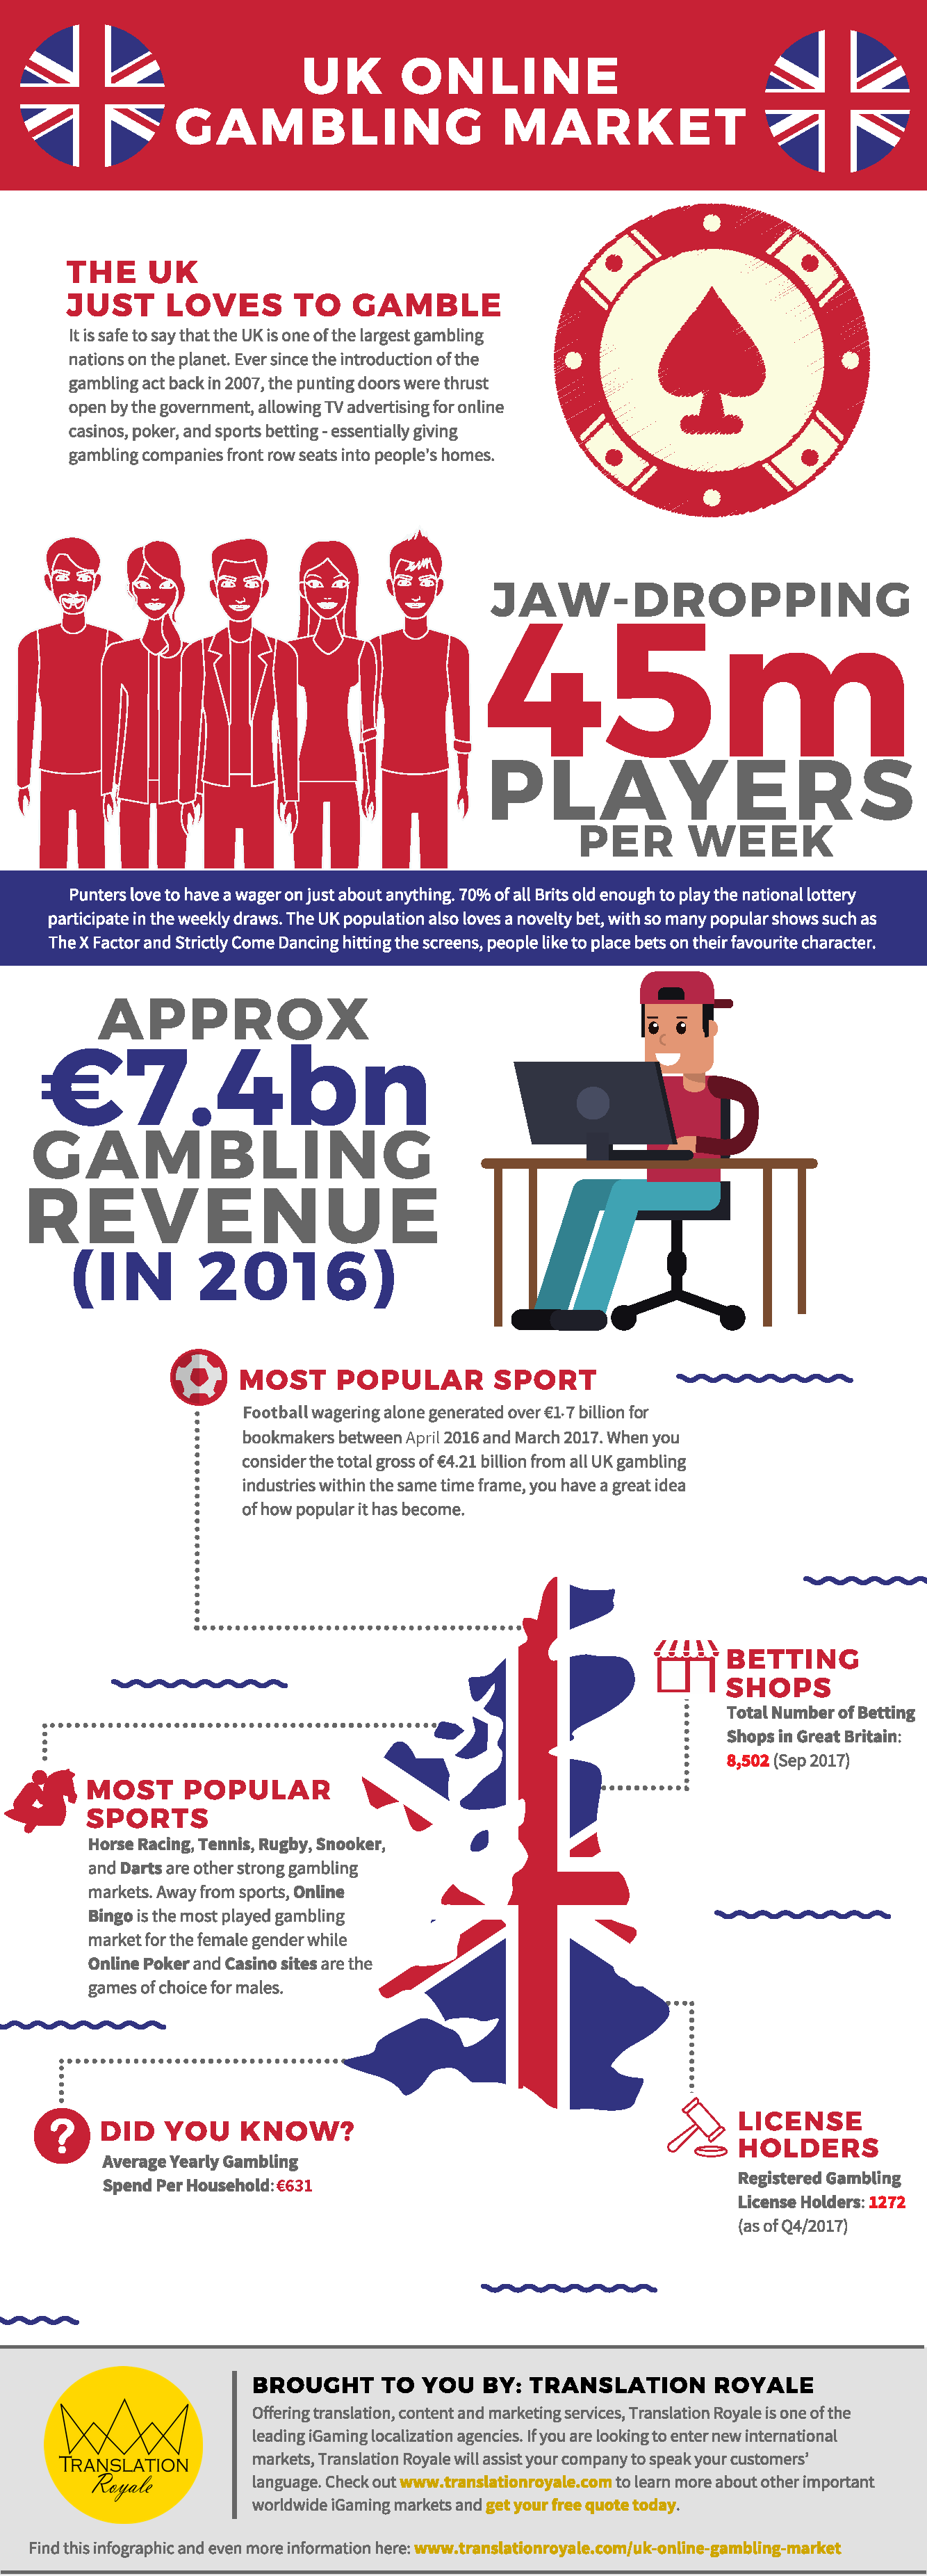 UK Online Gambling Market Infographic